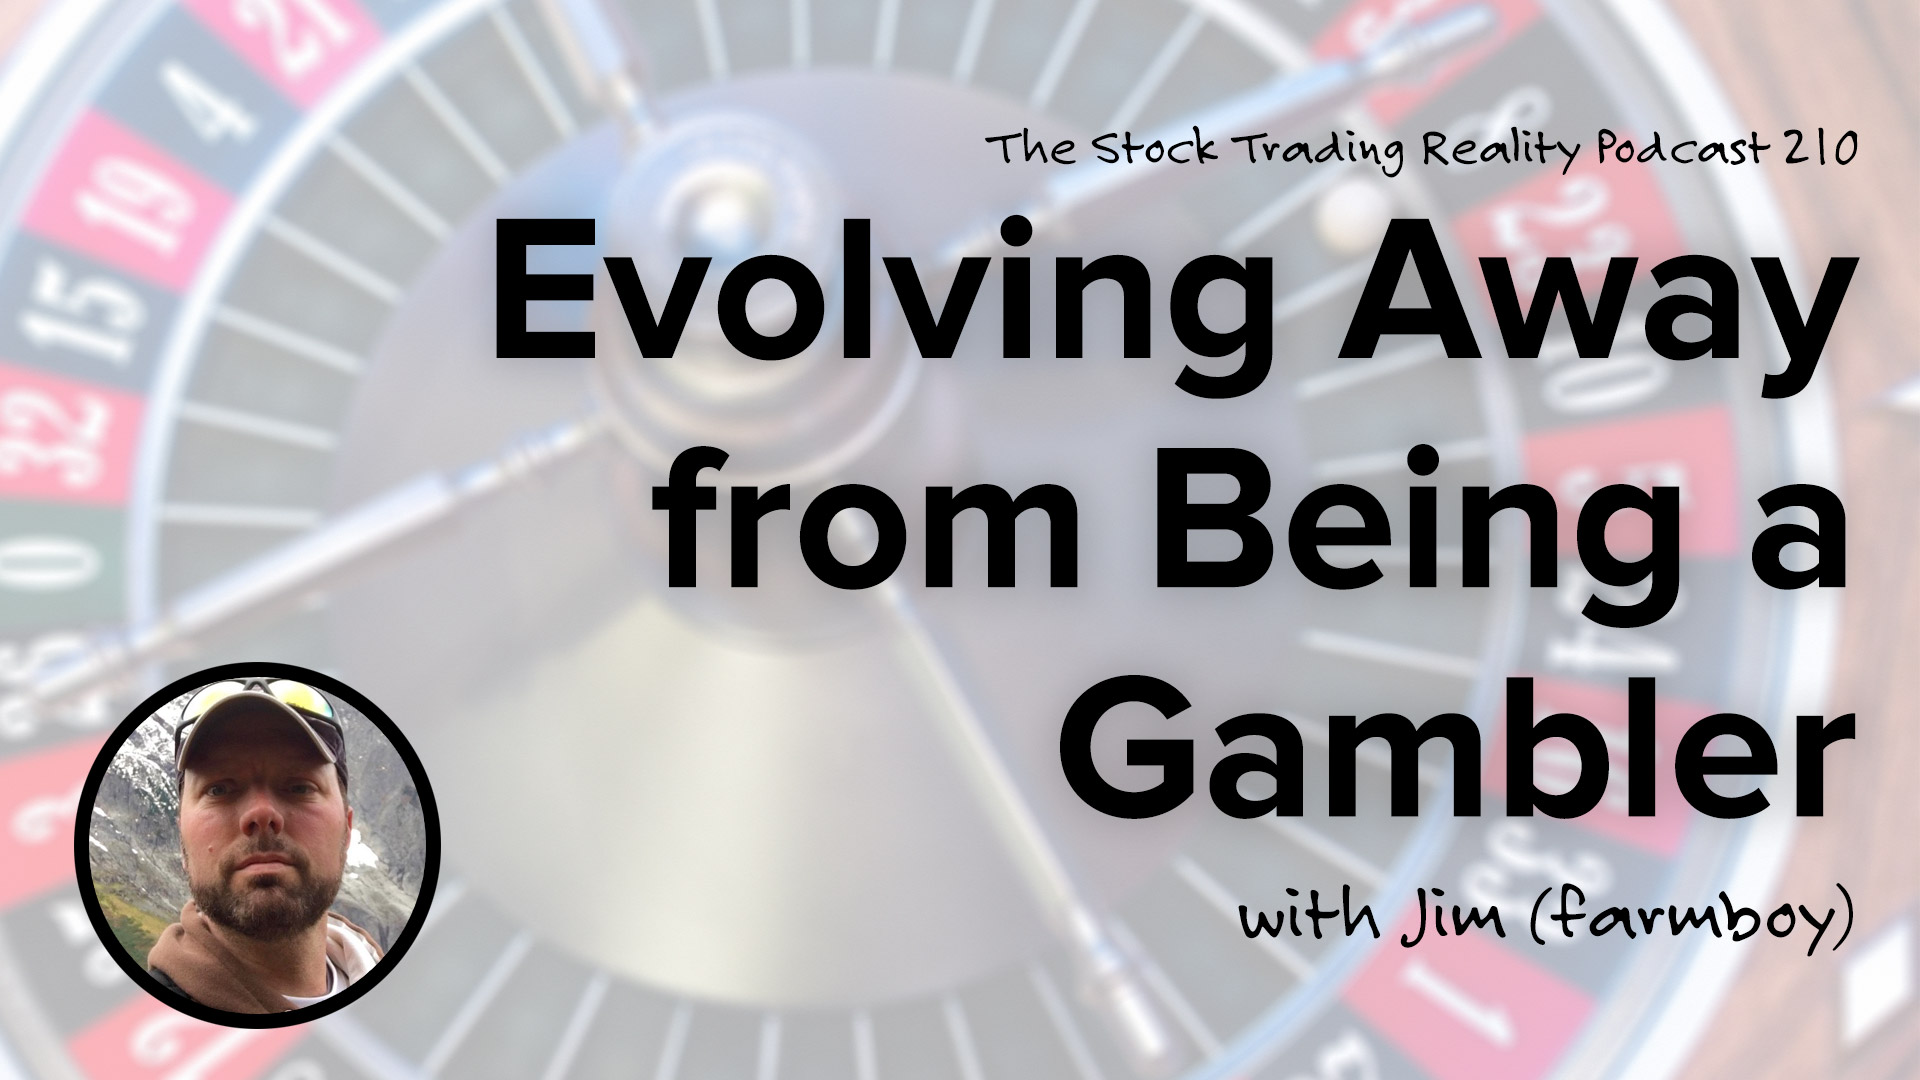 STR 210: Evolving Away from Being a Gambler